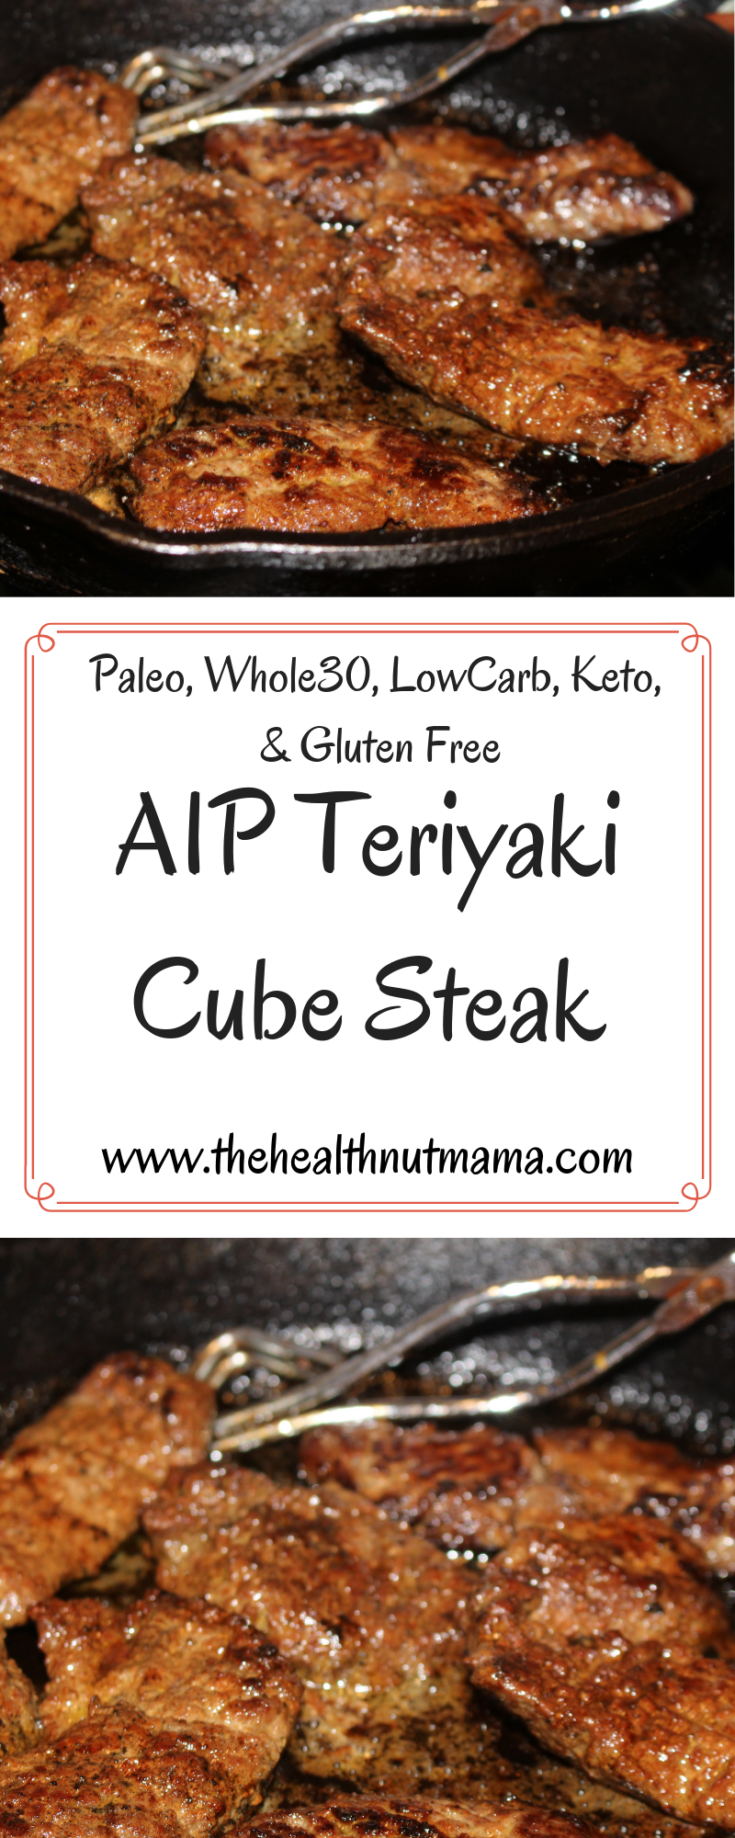 AIP Paleo Teriyaki Cube Steak is so easy & delicious. It can be used with Beef or Wild Game such as Venison. No one will be able to tell the difference! Perfect for AIP, Paleo, Whole30, Low Carb, Keto & gluten free Diets. #aip #paleo #whole30 #lowcarb #keto #glutenfree #soyfree #teriyaki #steak #venison #beef www.thehealthnutmama.com